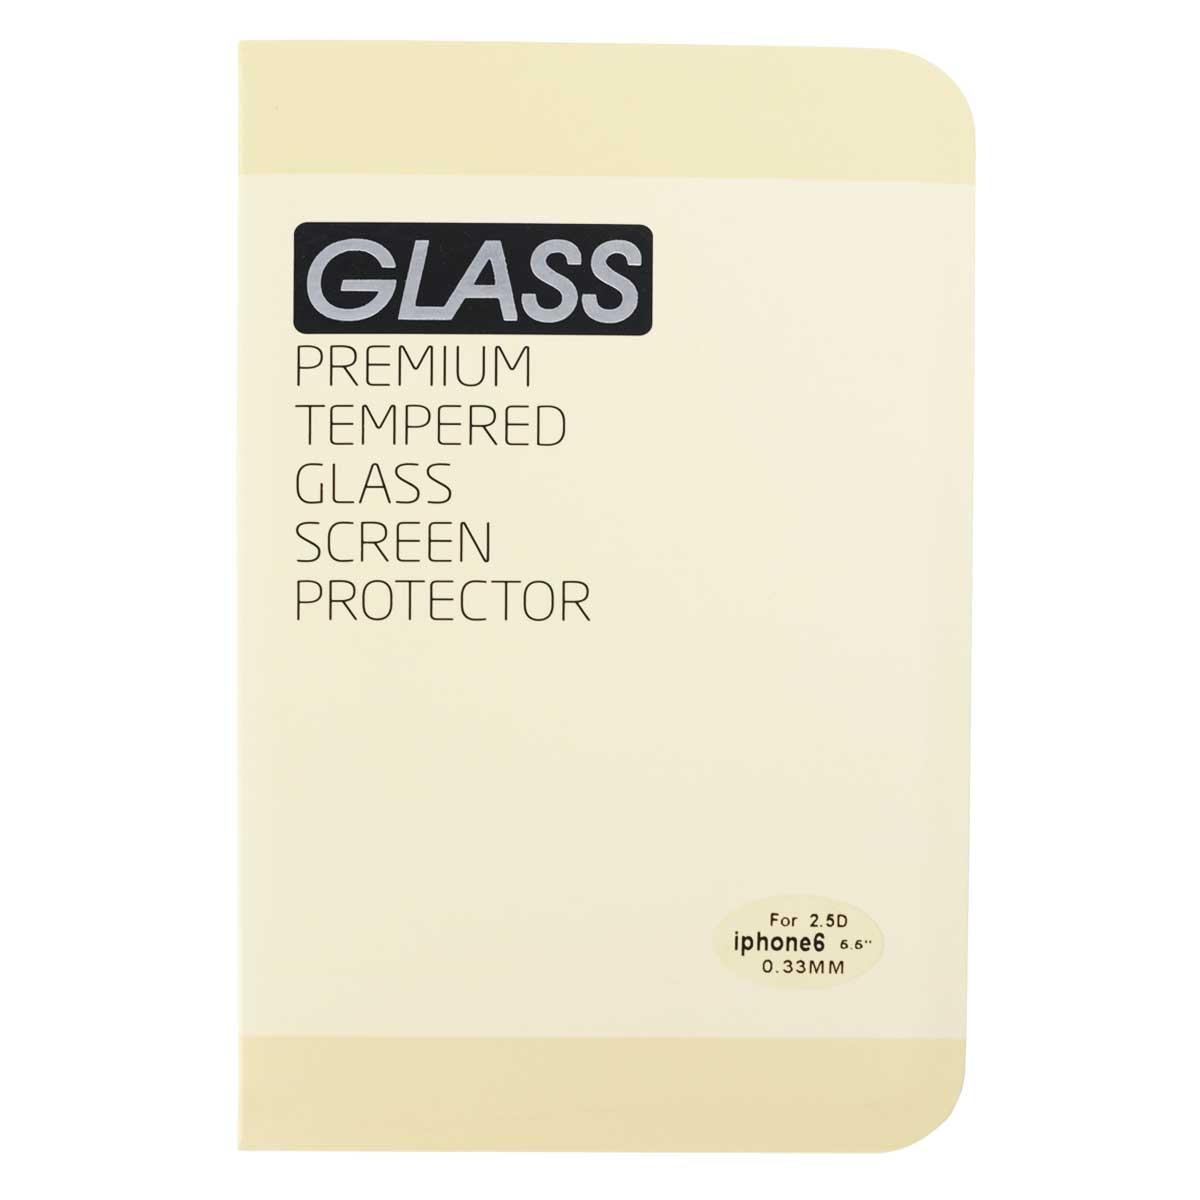 Liberty Project Tempered Glass защитное стекло для iPhone 6 Plus, Clear (0,33 мм) liberty project tempered glass защитное стекло для iphone 6 plus clear 0 33 мм